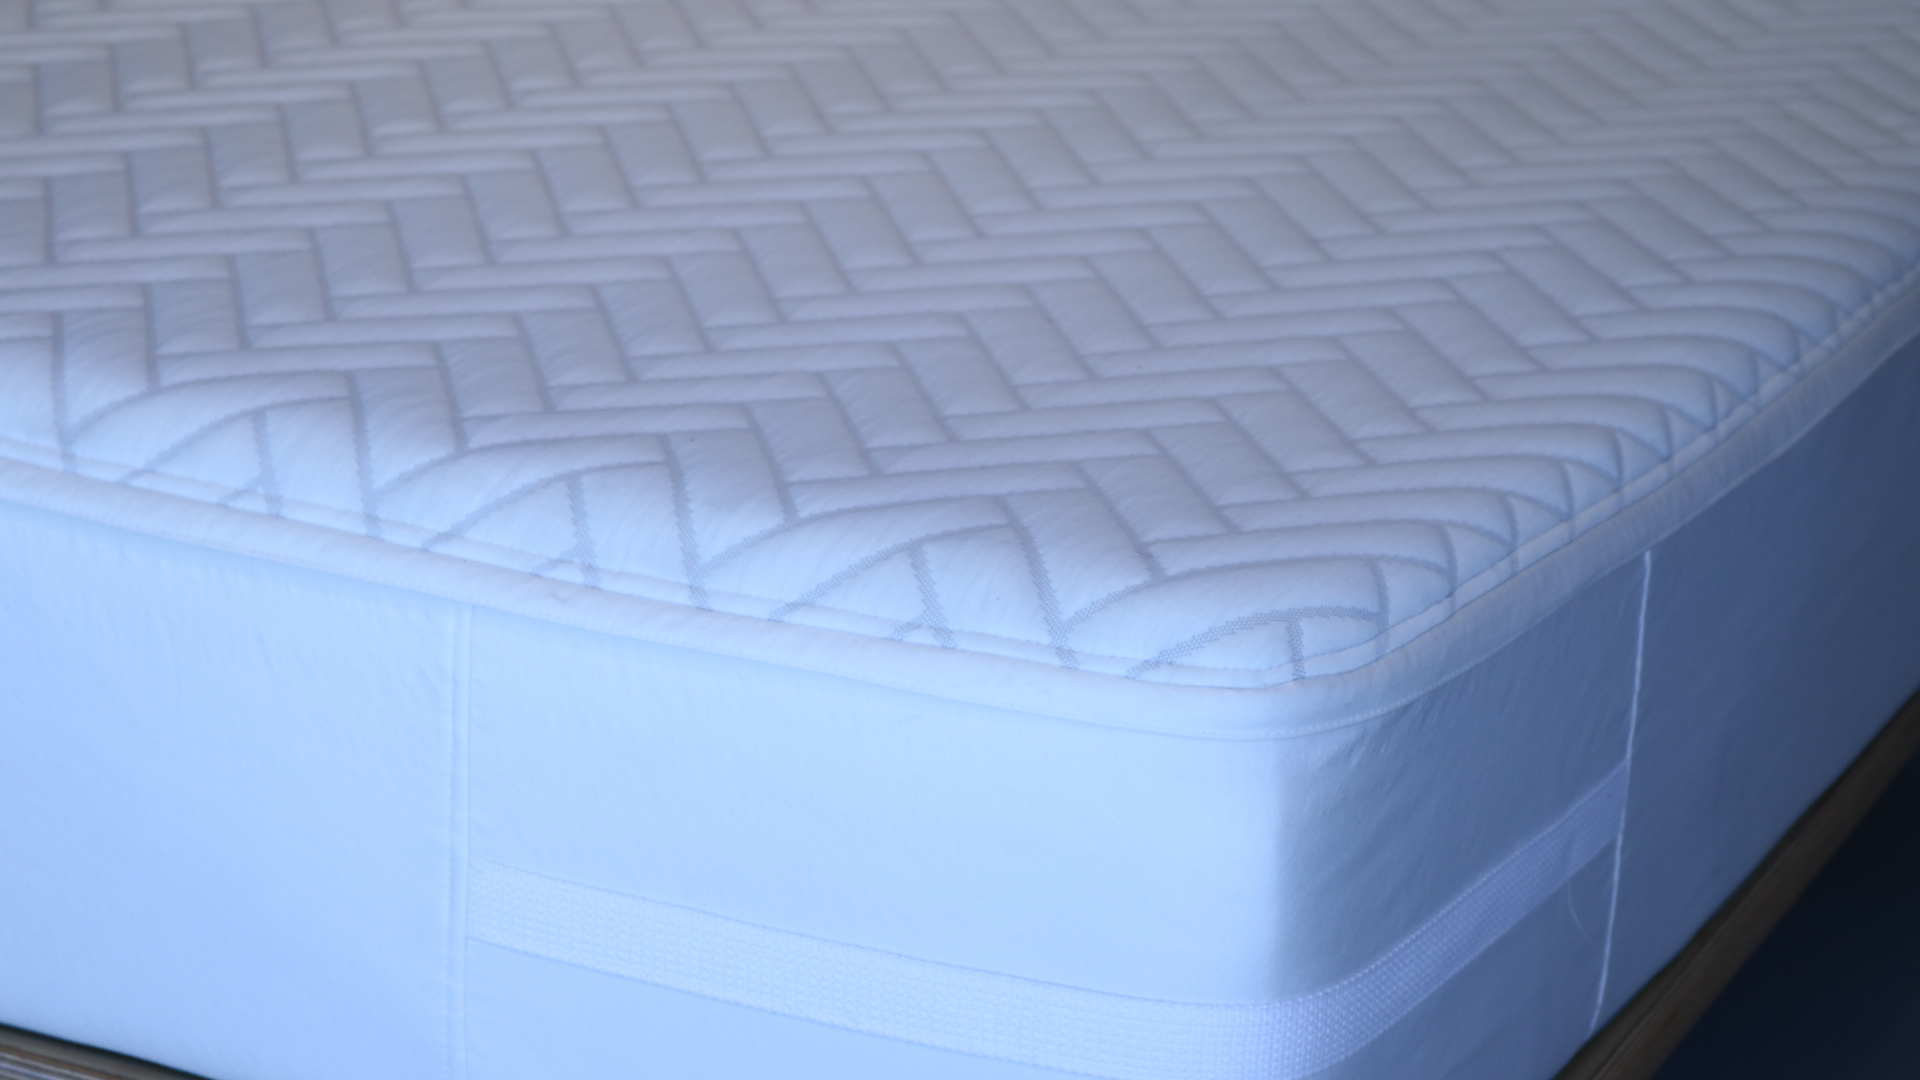 wright mattress review, mattress reviews, girl on the mattress